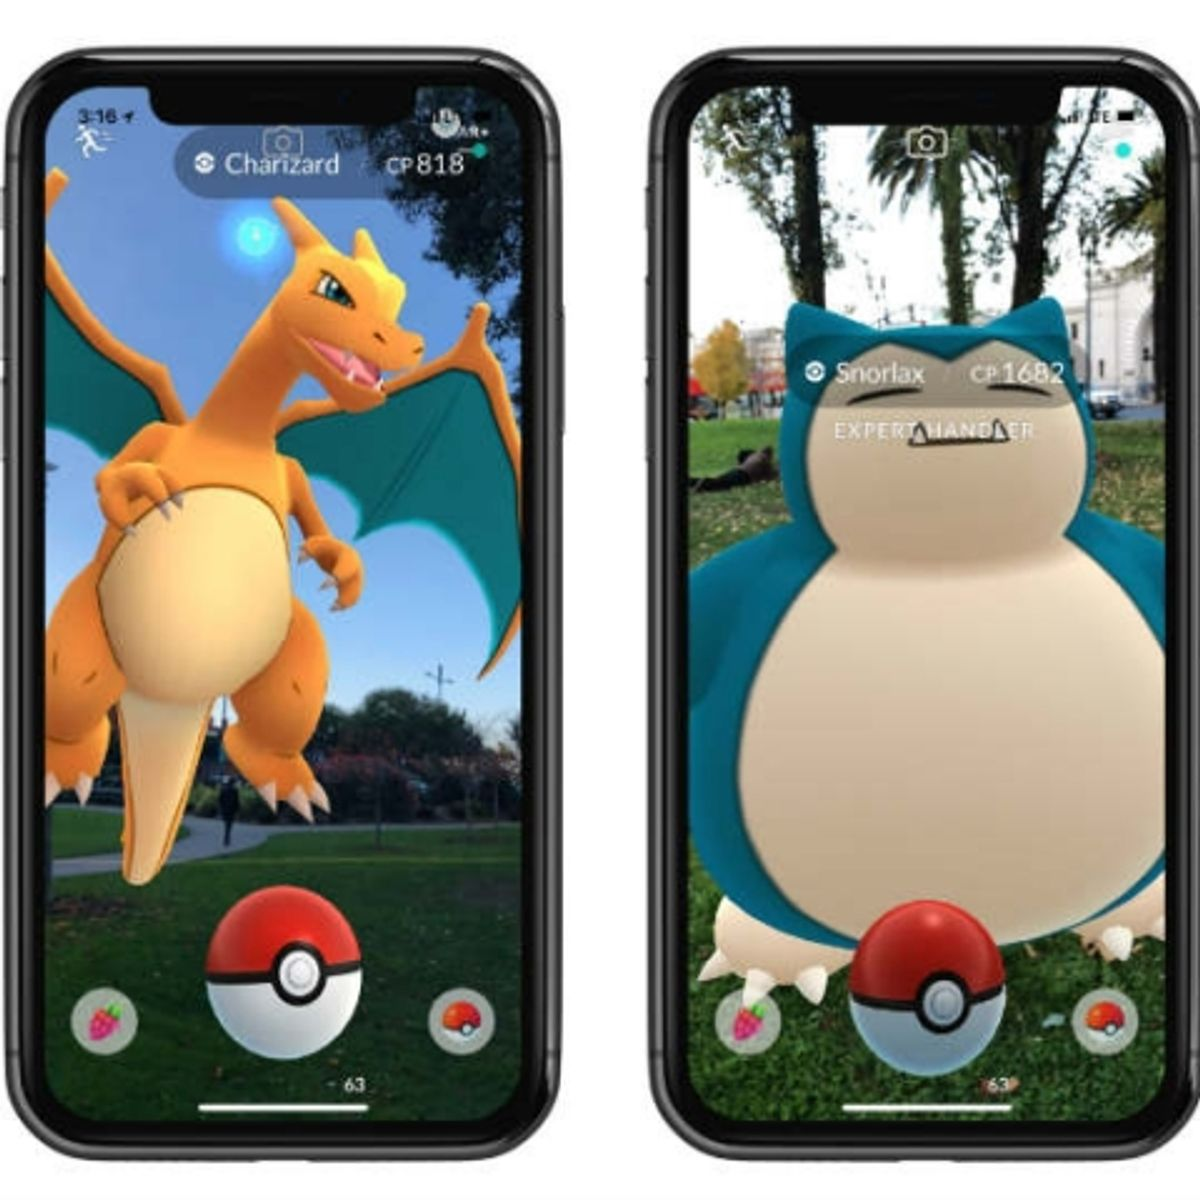 Pokemon Go AR+ Mode now available on Android Smartphones